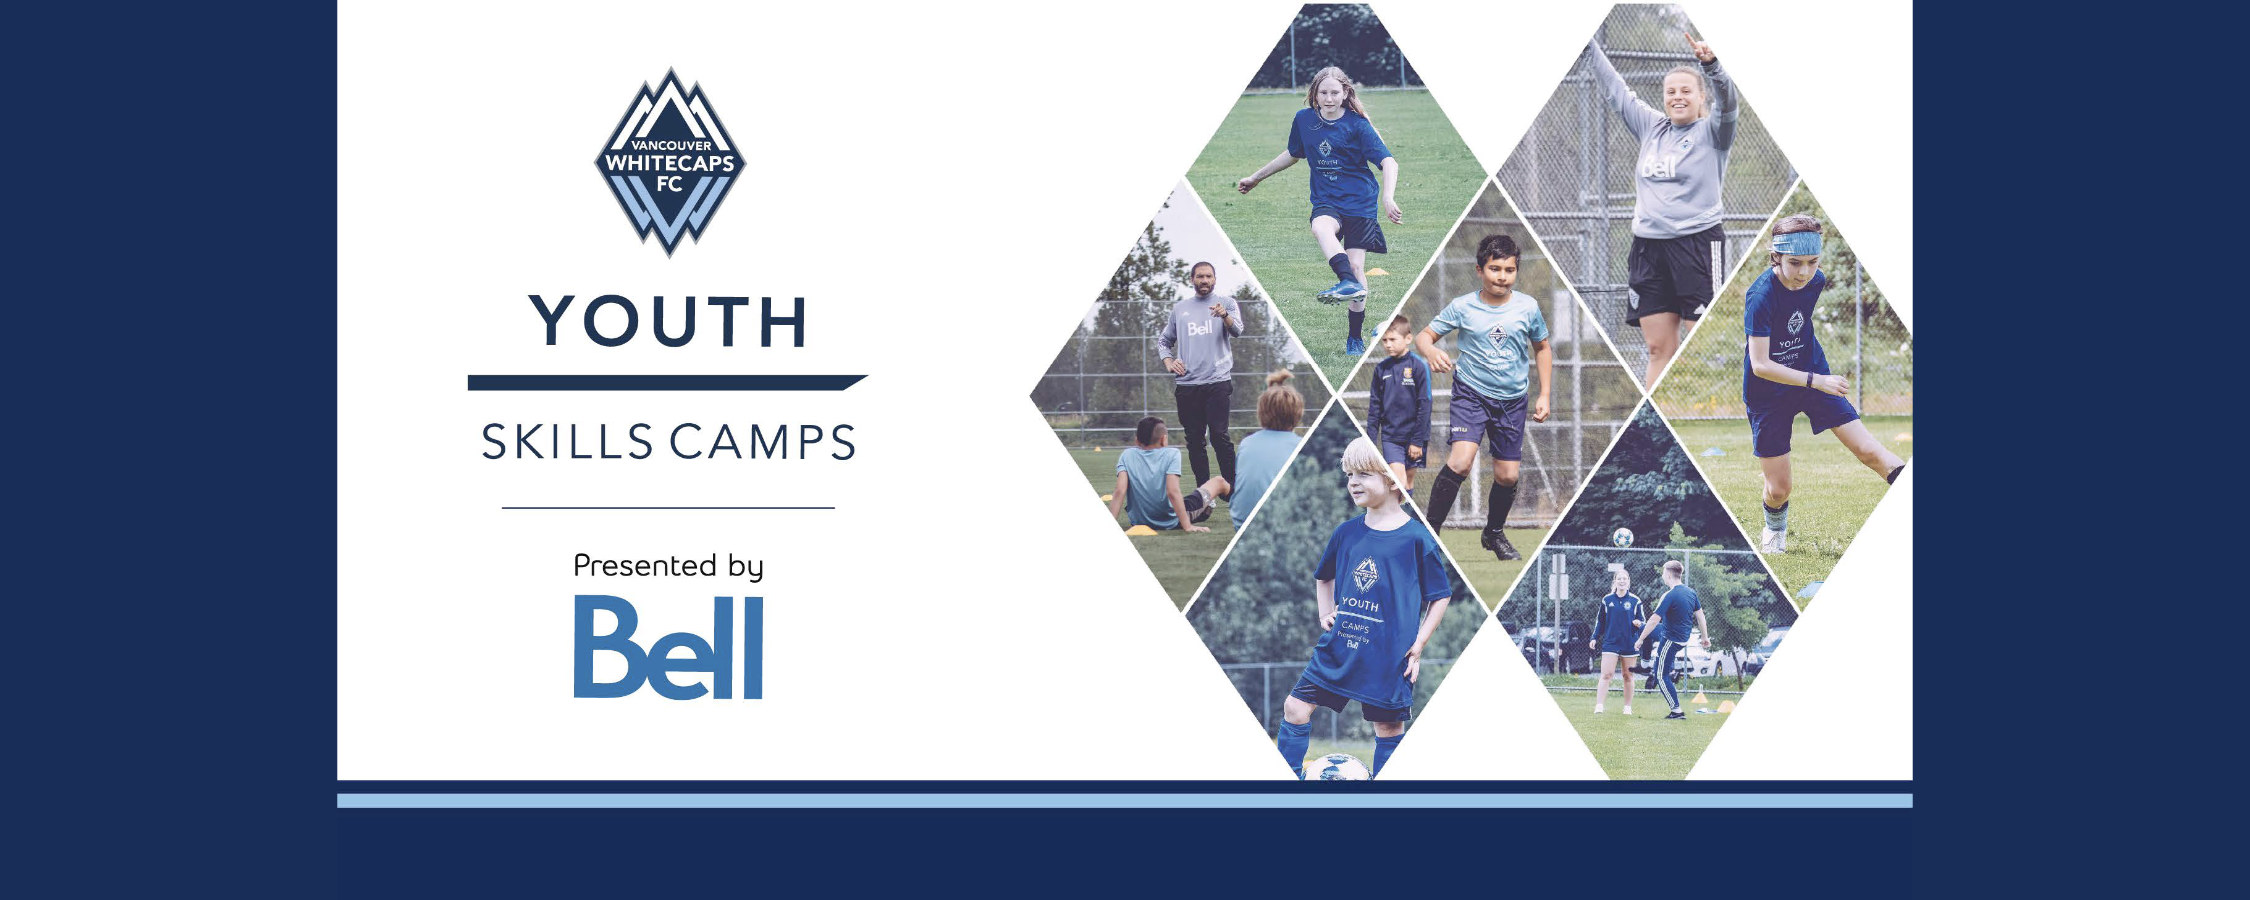 Port Moody Youth Skills Camps